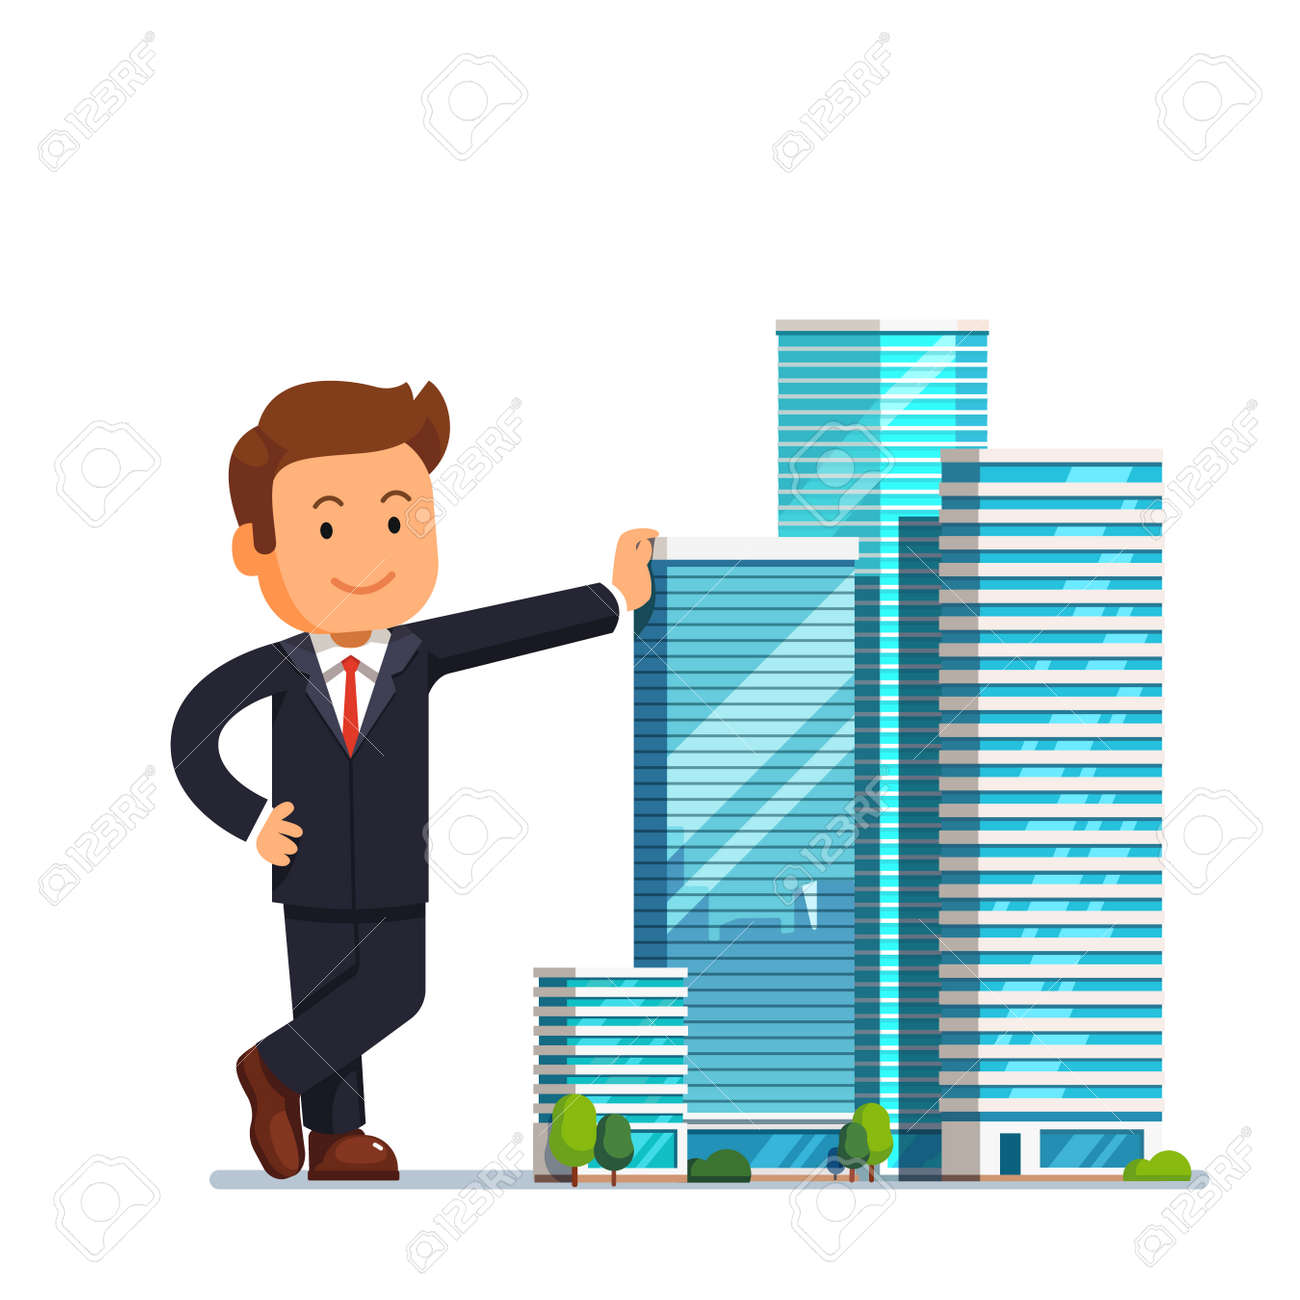 real estate developer entrepreneur concept business man owner of skyscraper buildings property standing and leaning